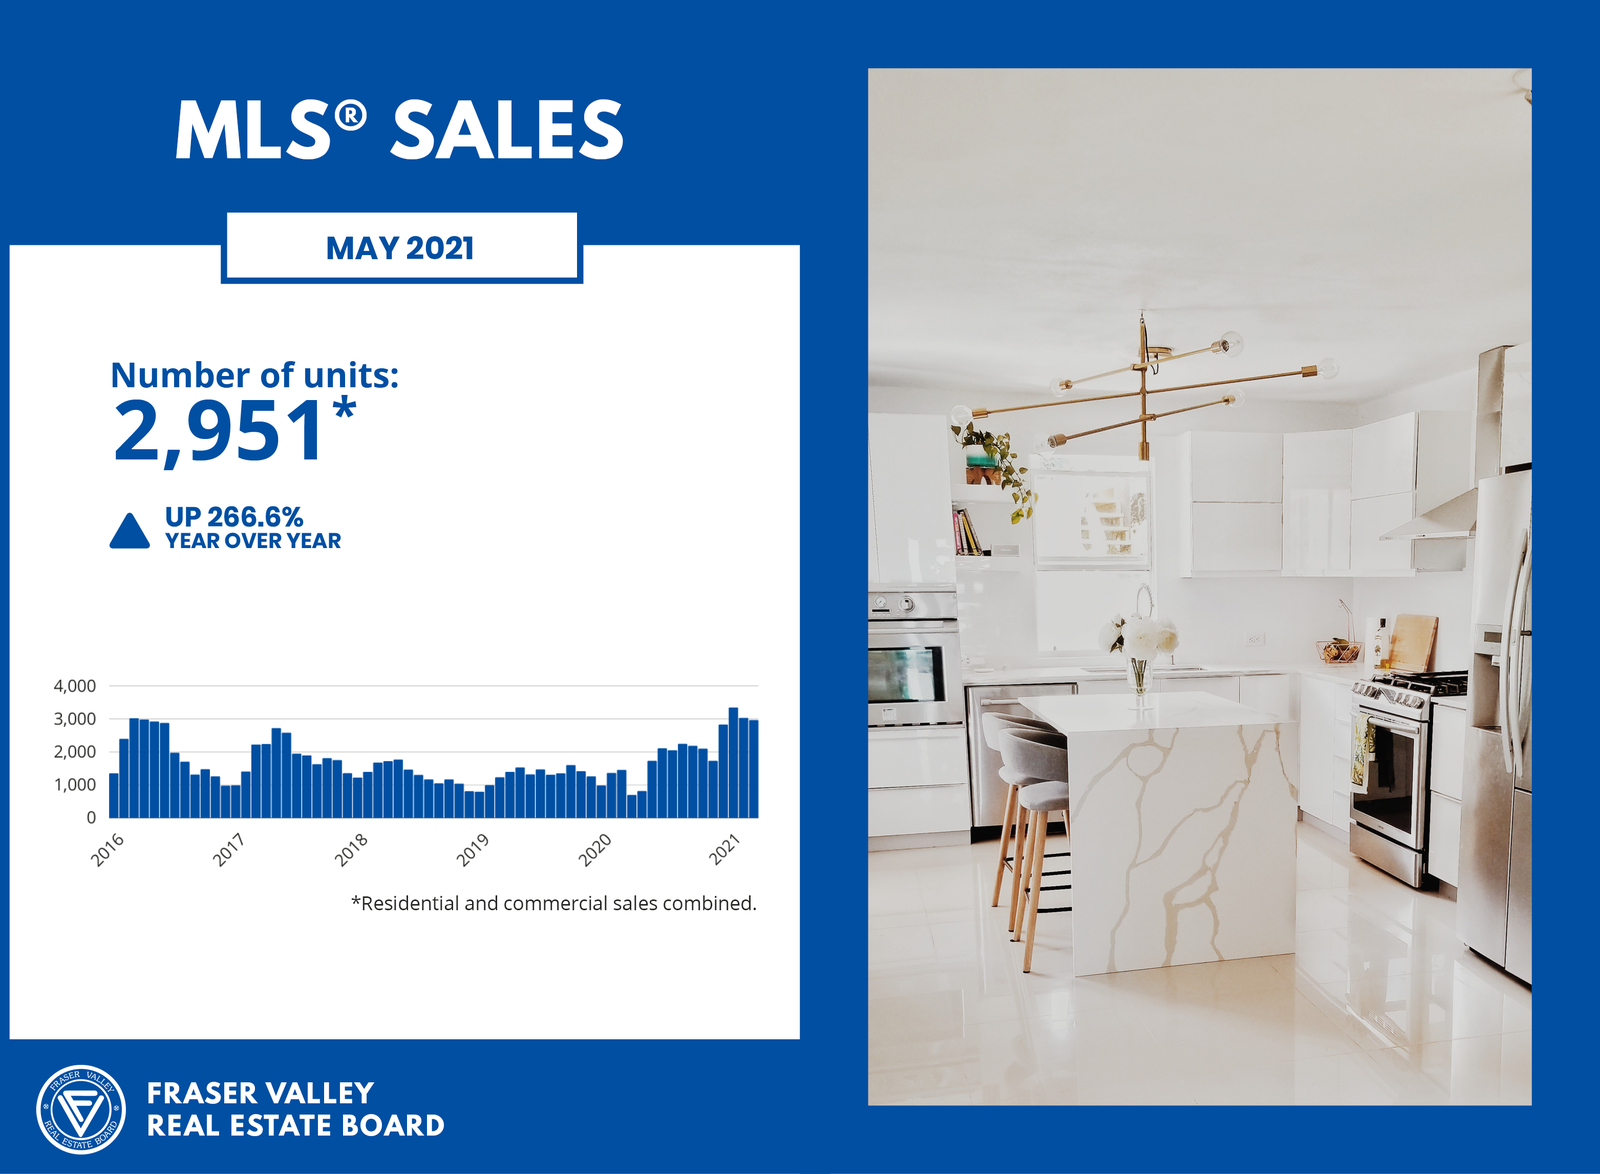 MLS Sales for May 2021 - Fraser Valley Real Estate